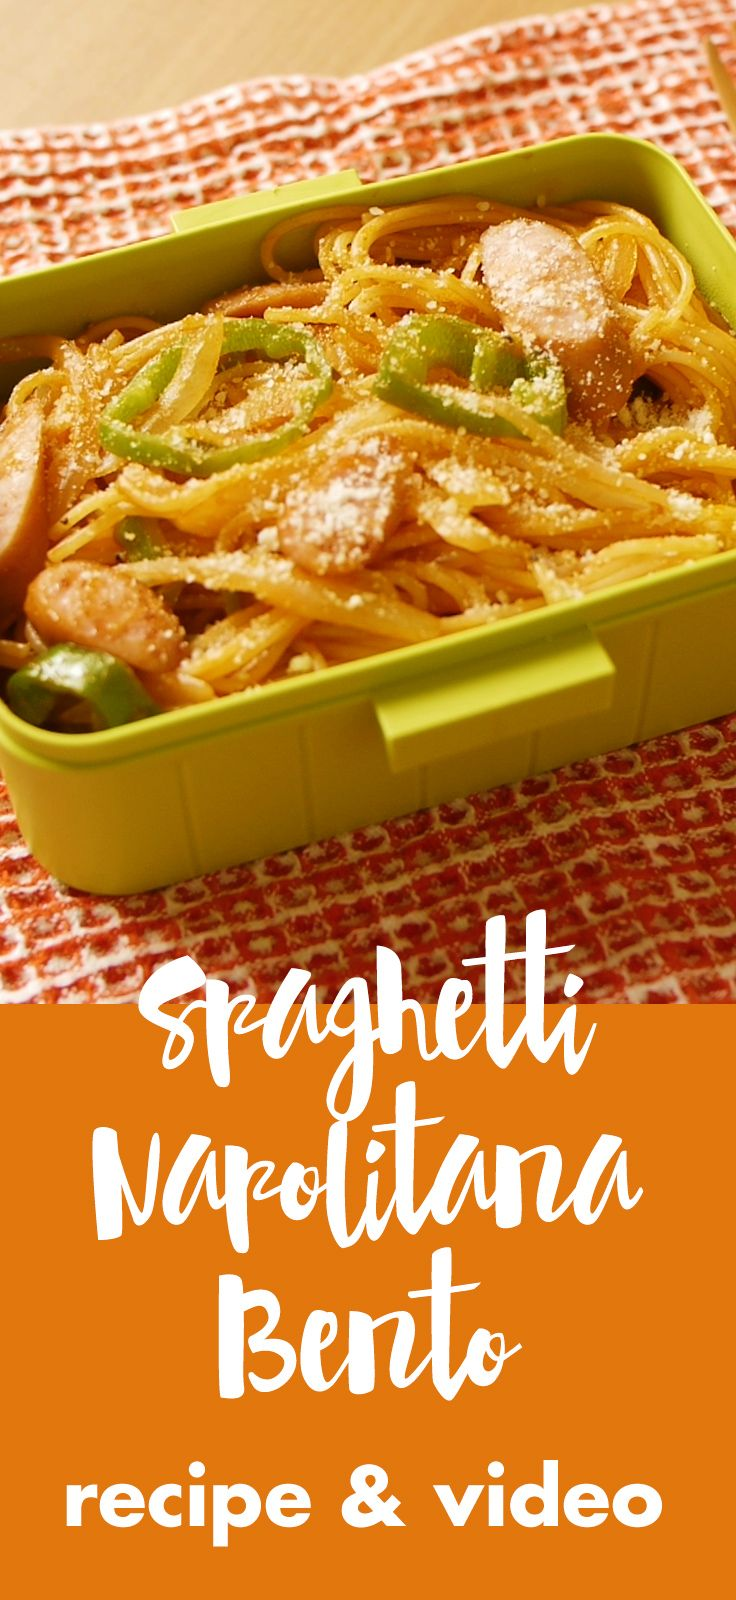 Spaghetti Napolitana Bento! Visit our site for 100 quick and easy traditional japanese bento lunch box recipes and ideas for adults.  Pin now for later!